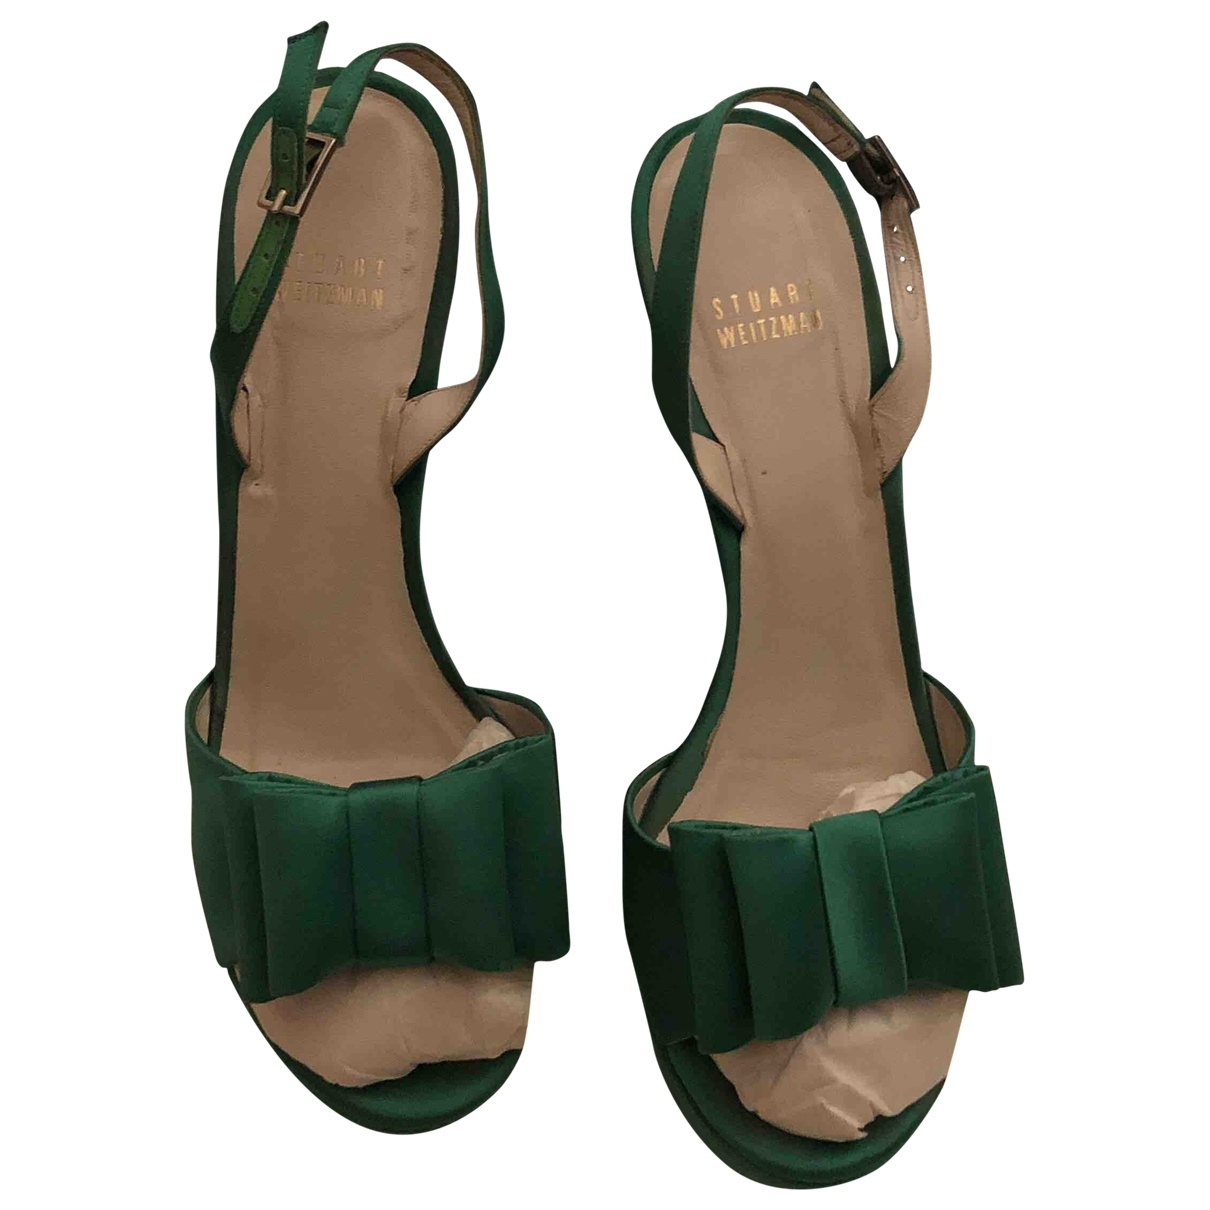 Stuart Weitzman \N Green Cloth Sandals for Women 39 EU